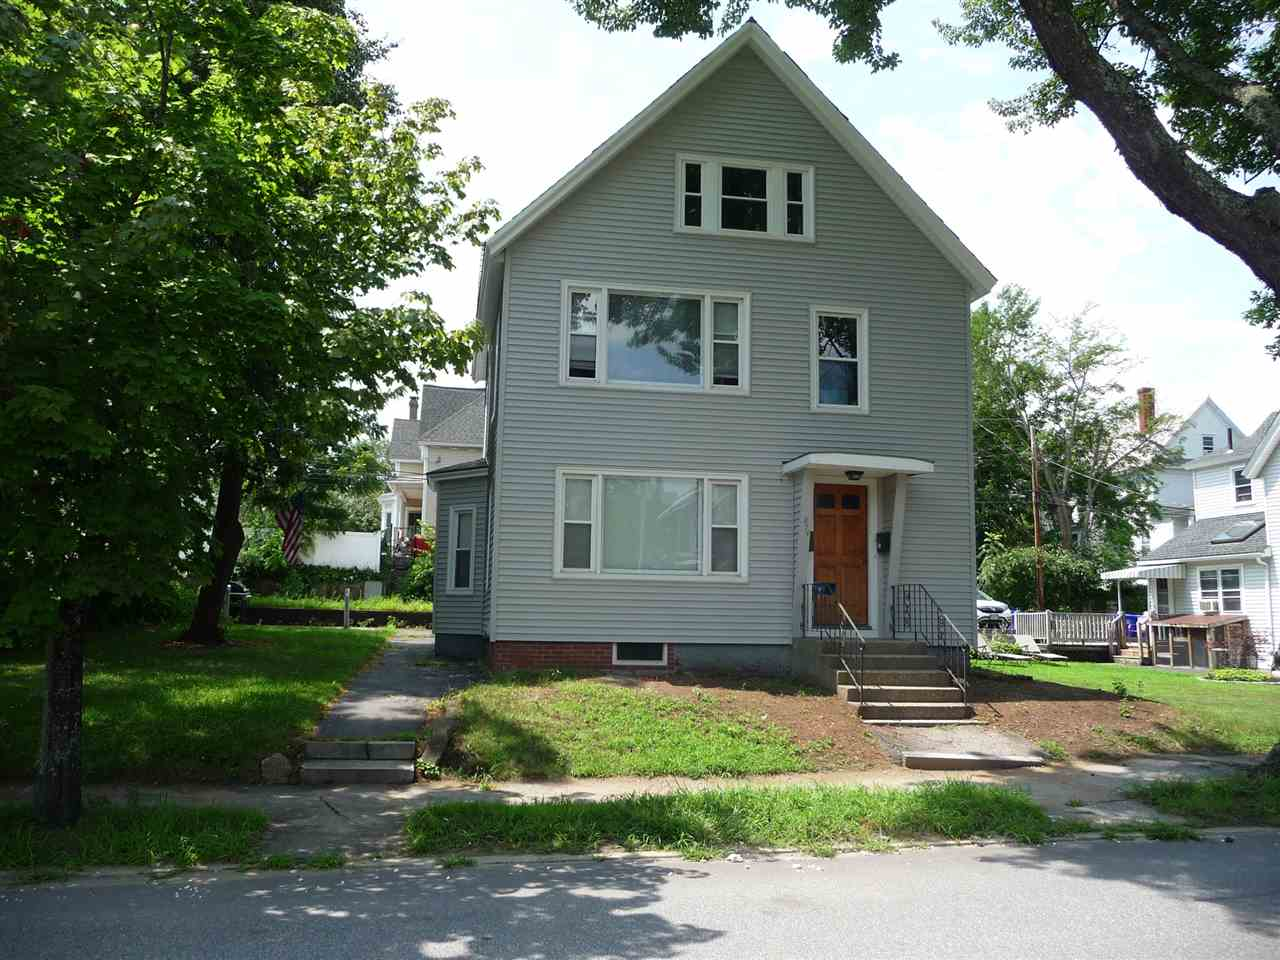 Photo of 874 Union Street Manchester, NH 03104